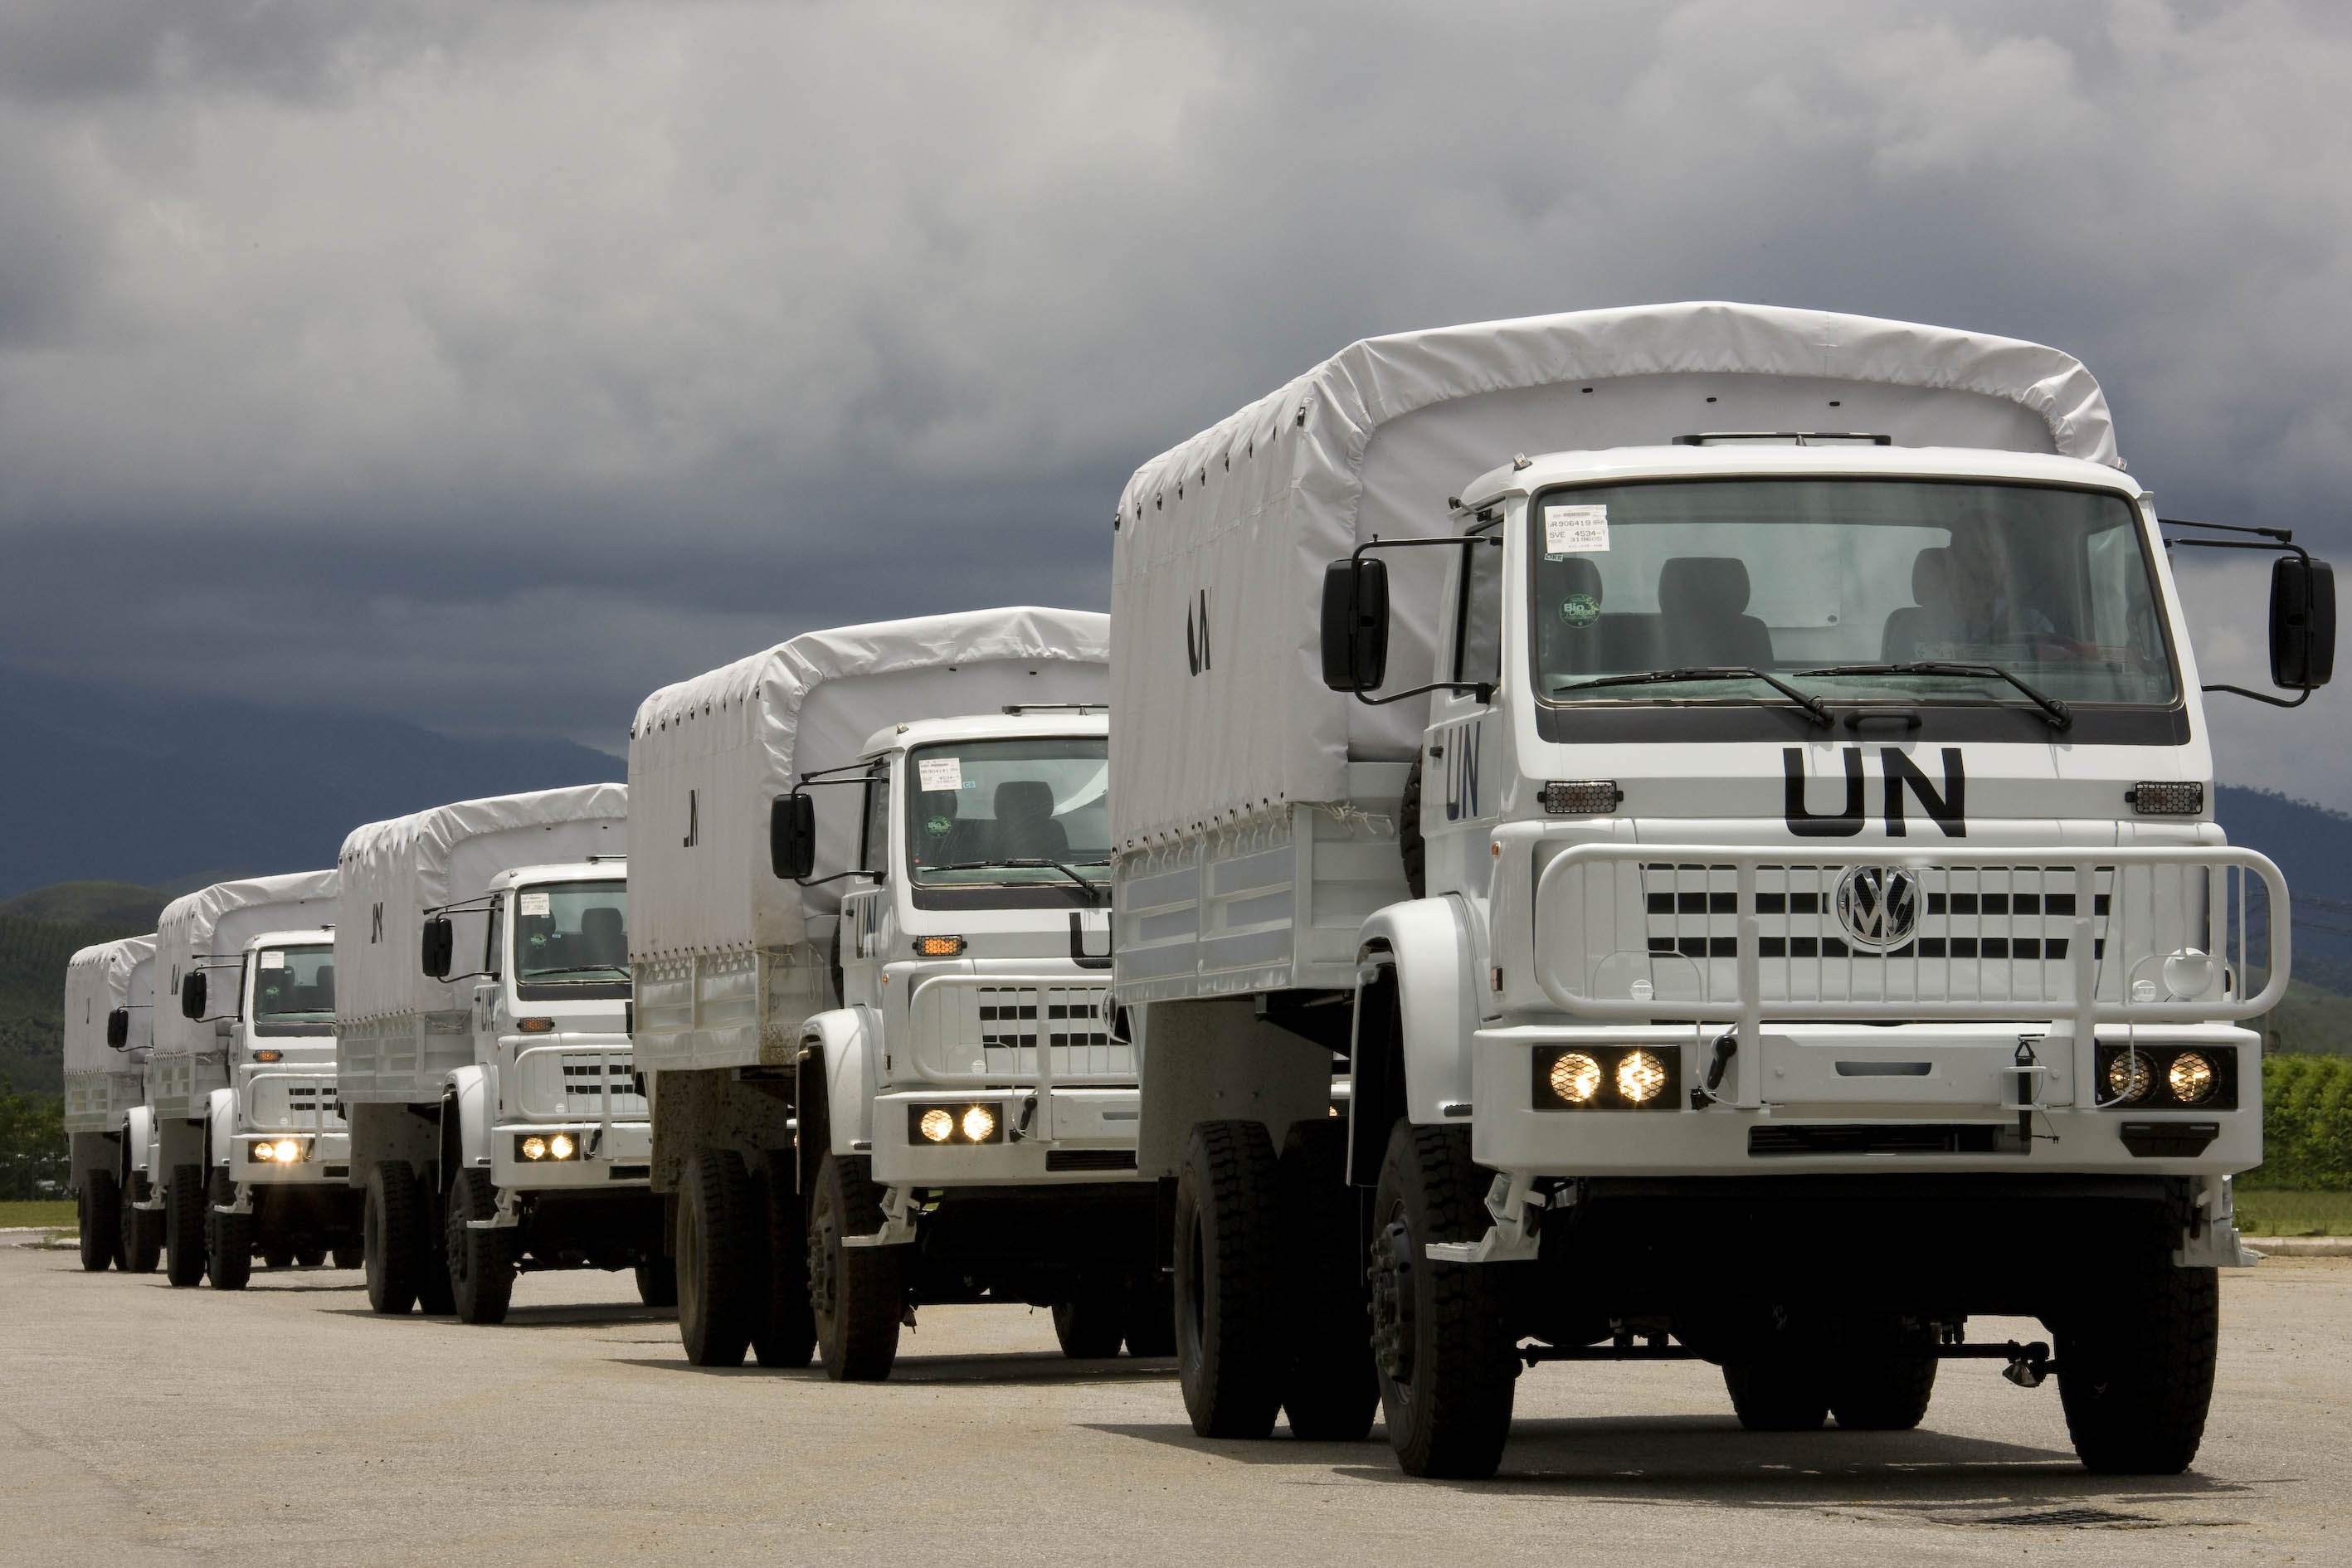 brazil VW UNB trucks